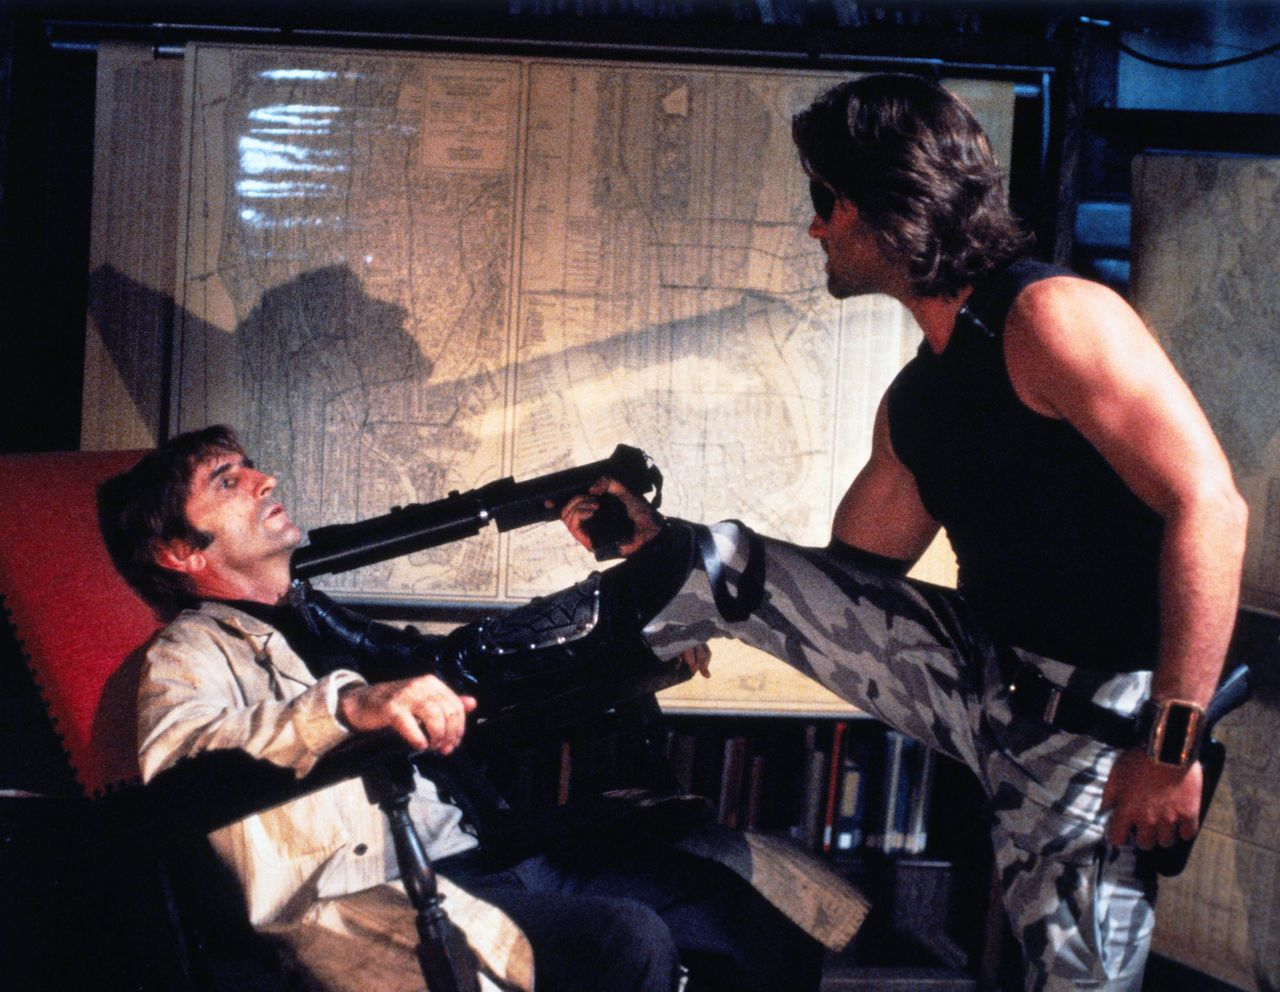 Kurt Russell heeft overtuigende argumenten om hem z'n zin te geven Escape From New York (1981) Pers: Harry Dean Stanton, Kurt Russell Dir: John Carpenter Ref: ESC005BH Photo Credit: [ Avco Embassy / The Kobal Collection ] Editorial use only related to cinema, television and personalities. Not for cover use, advertising or fictional works without specific prior agreement